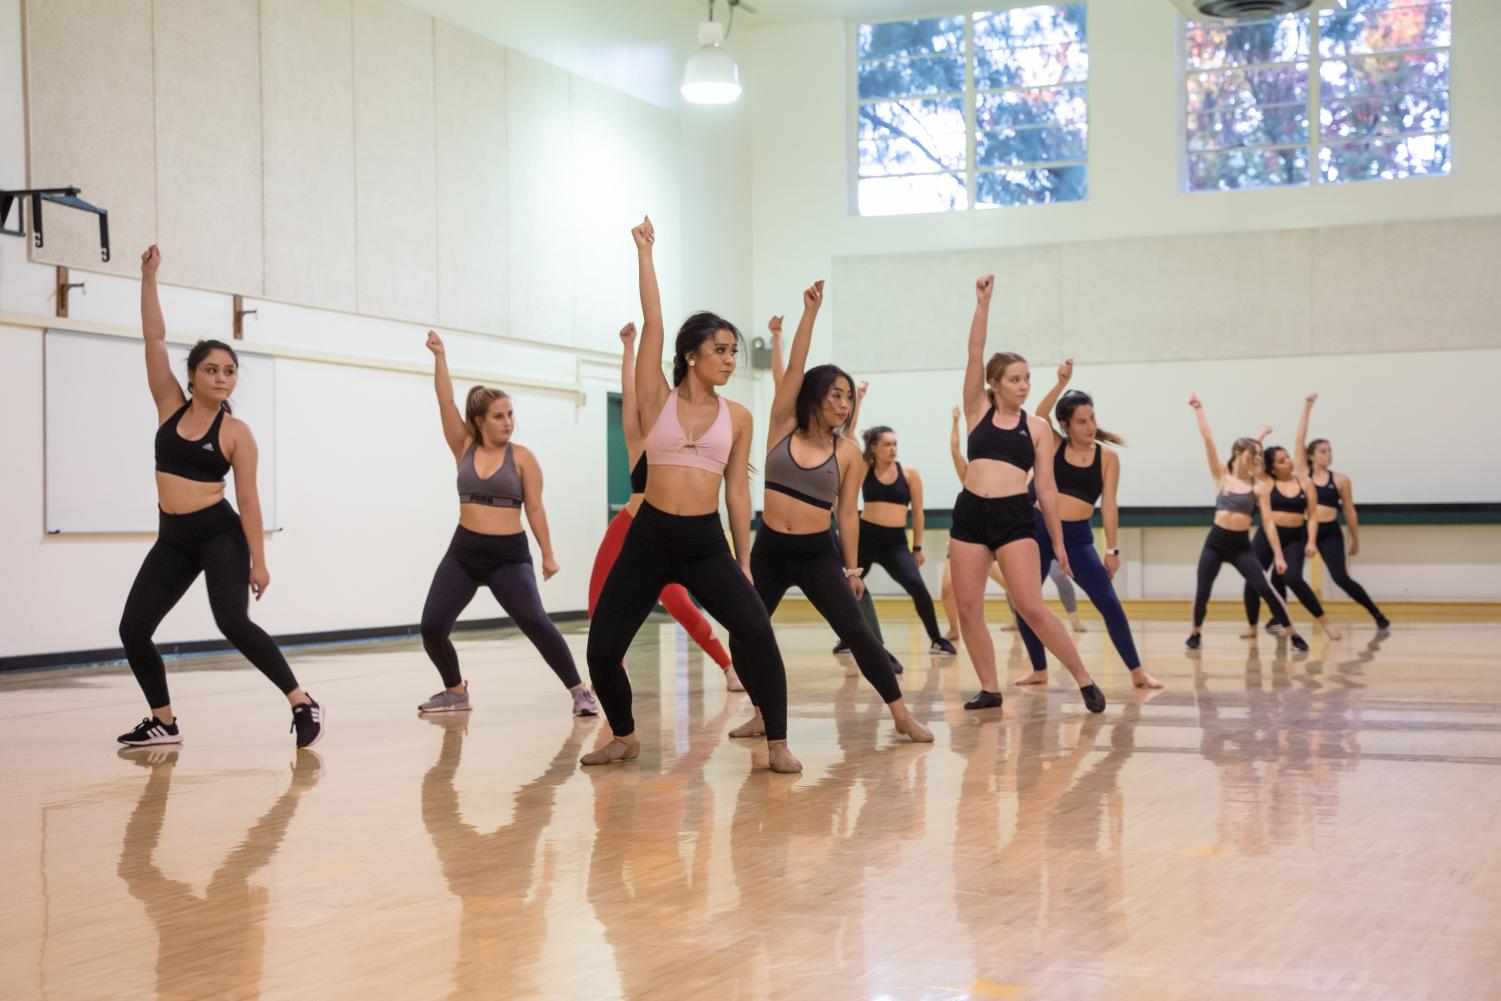 The Sac State Dance Team practicing a dance routine at  Yosemite Hall on Friday, Nov. 15. To prepare for their performances, the dancers practice for three hours every Tuesday and Friday to perform throughout the semester.